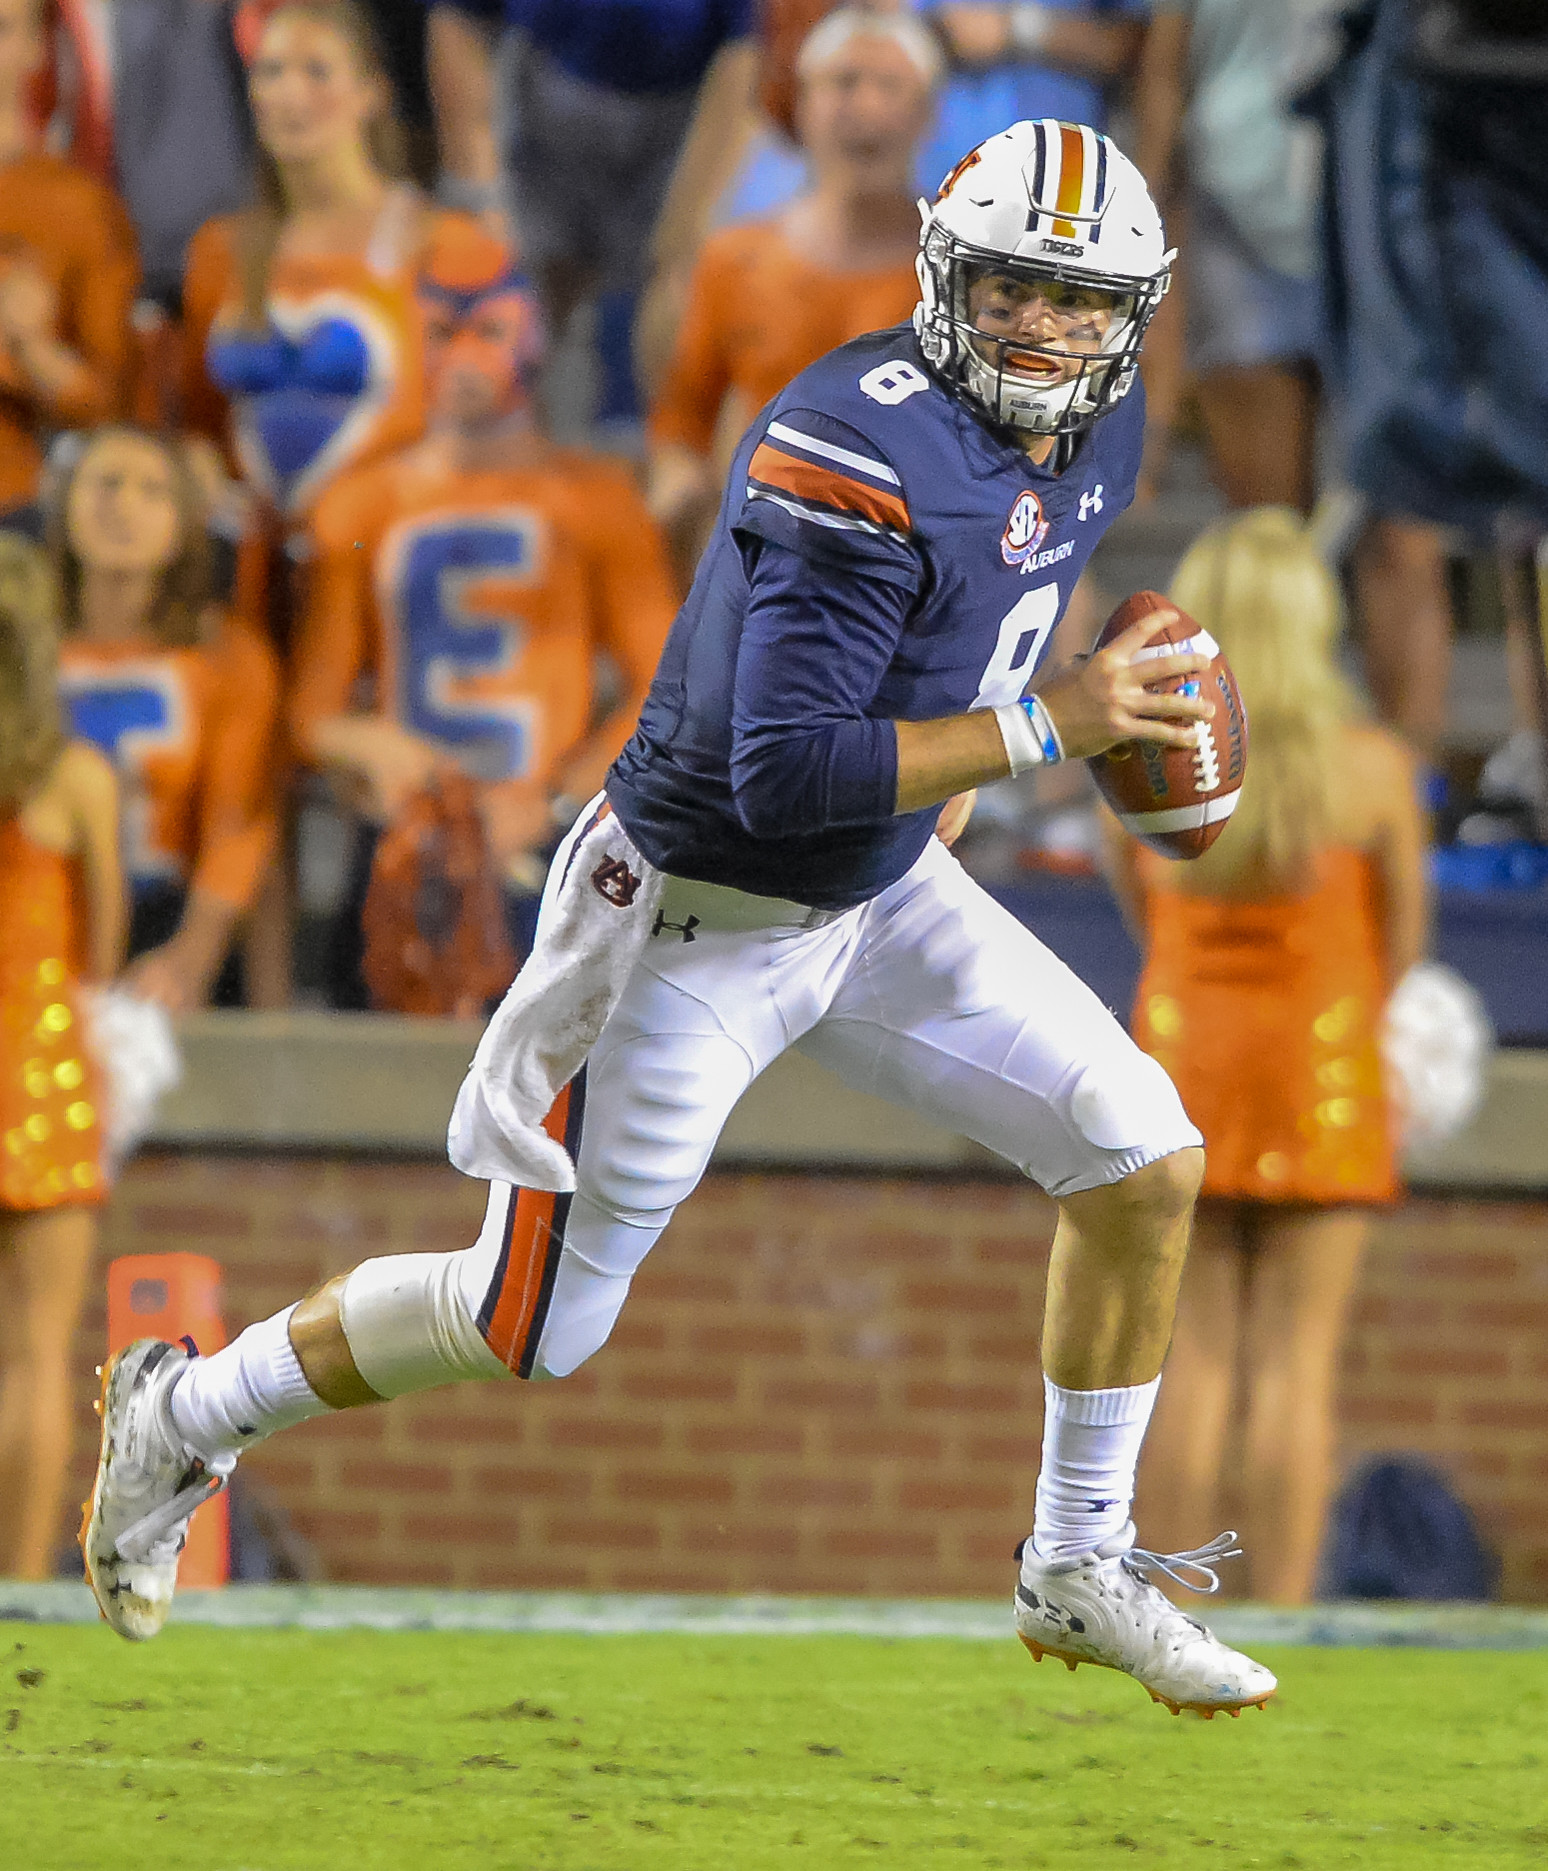 Auburn Tigers quarterback Jarrett Stidham (8) scrambles during the first half of Saturday's game, at Jordan Hare Stadium in Auburn AL. Daily Mountain Eagle -  Jeff Johnsey